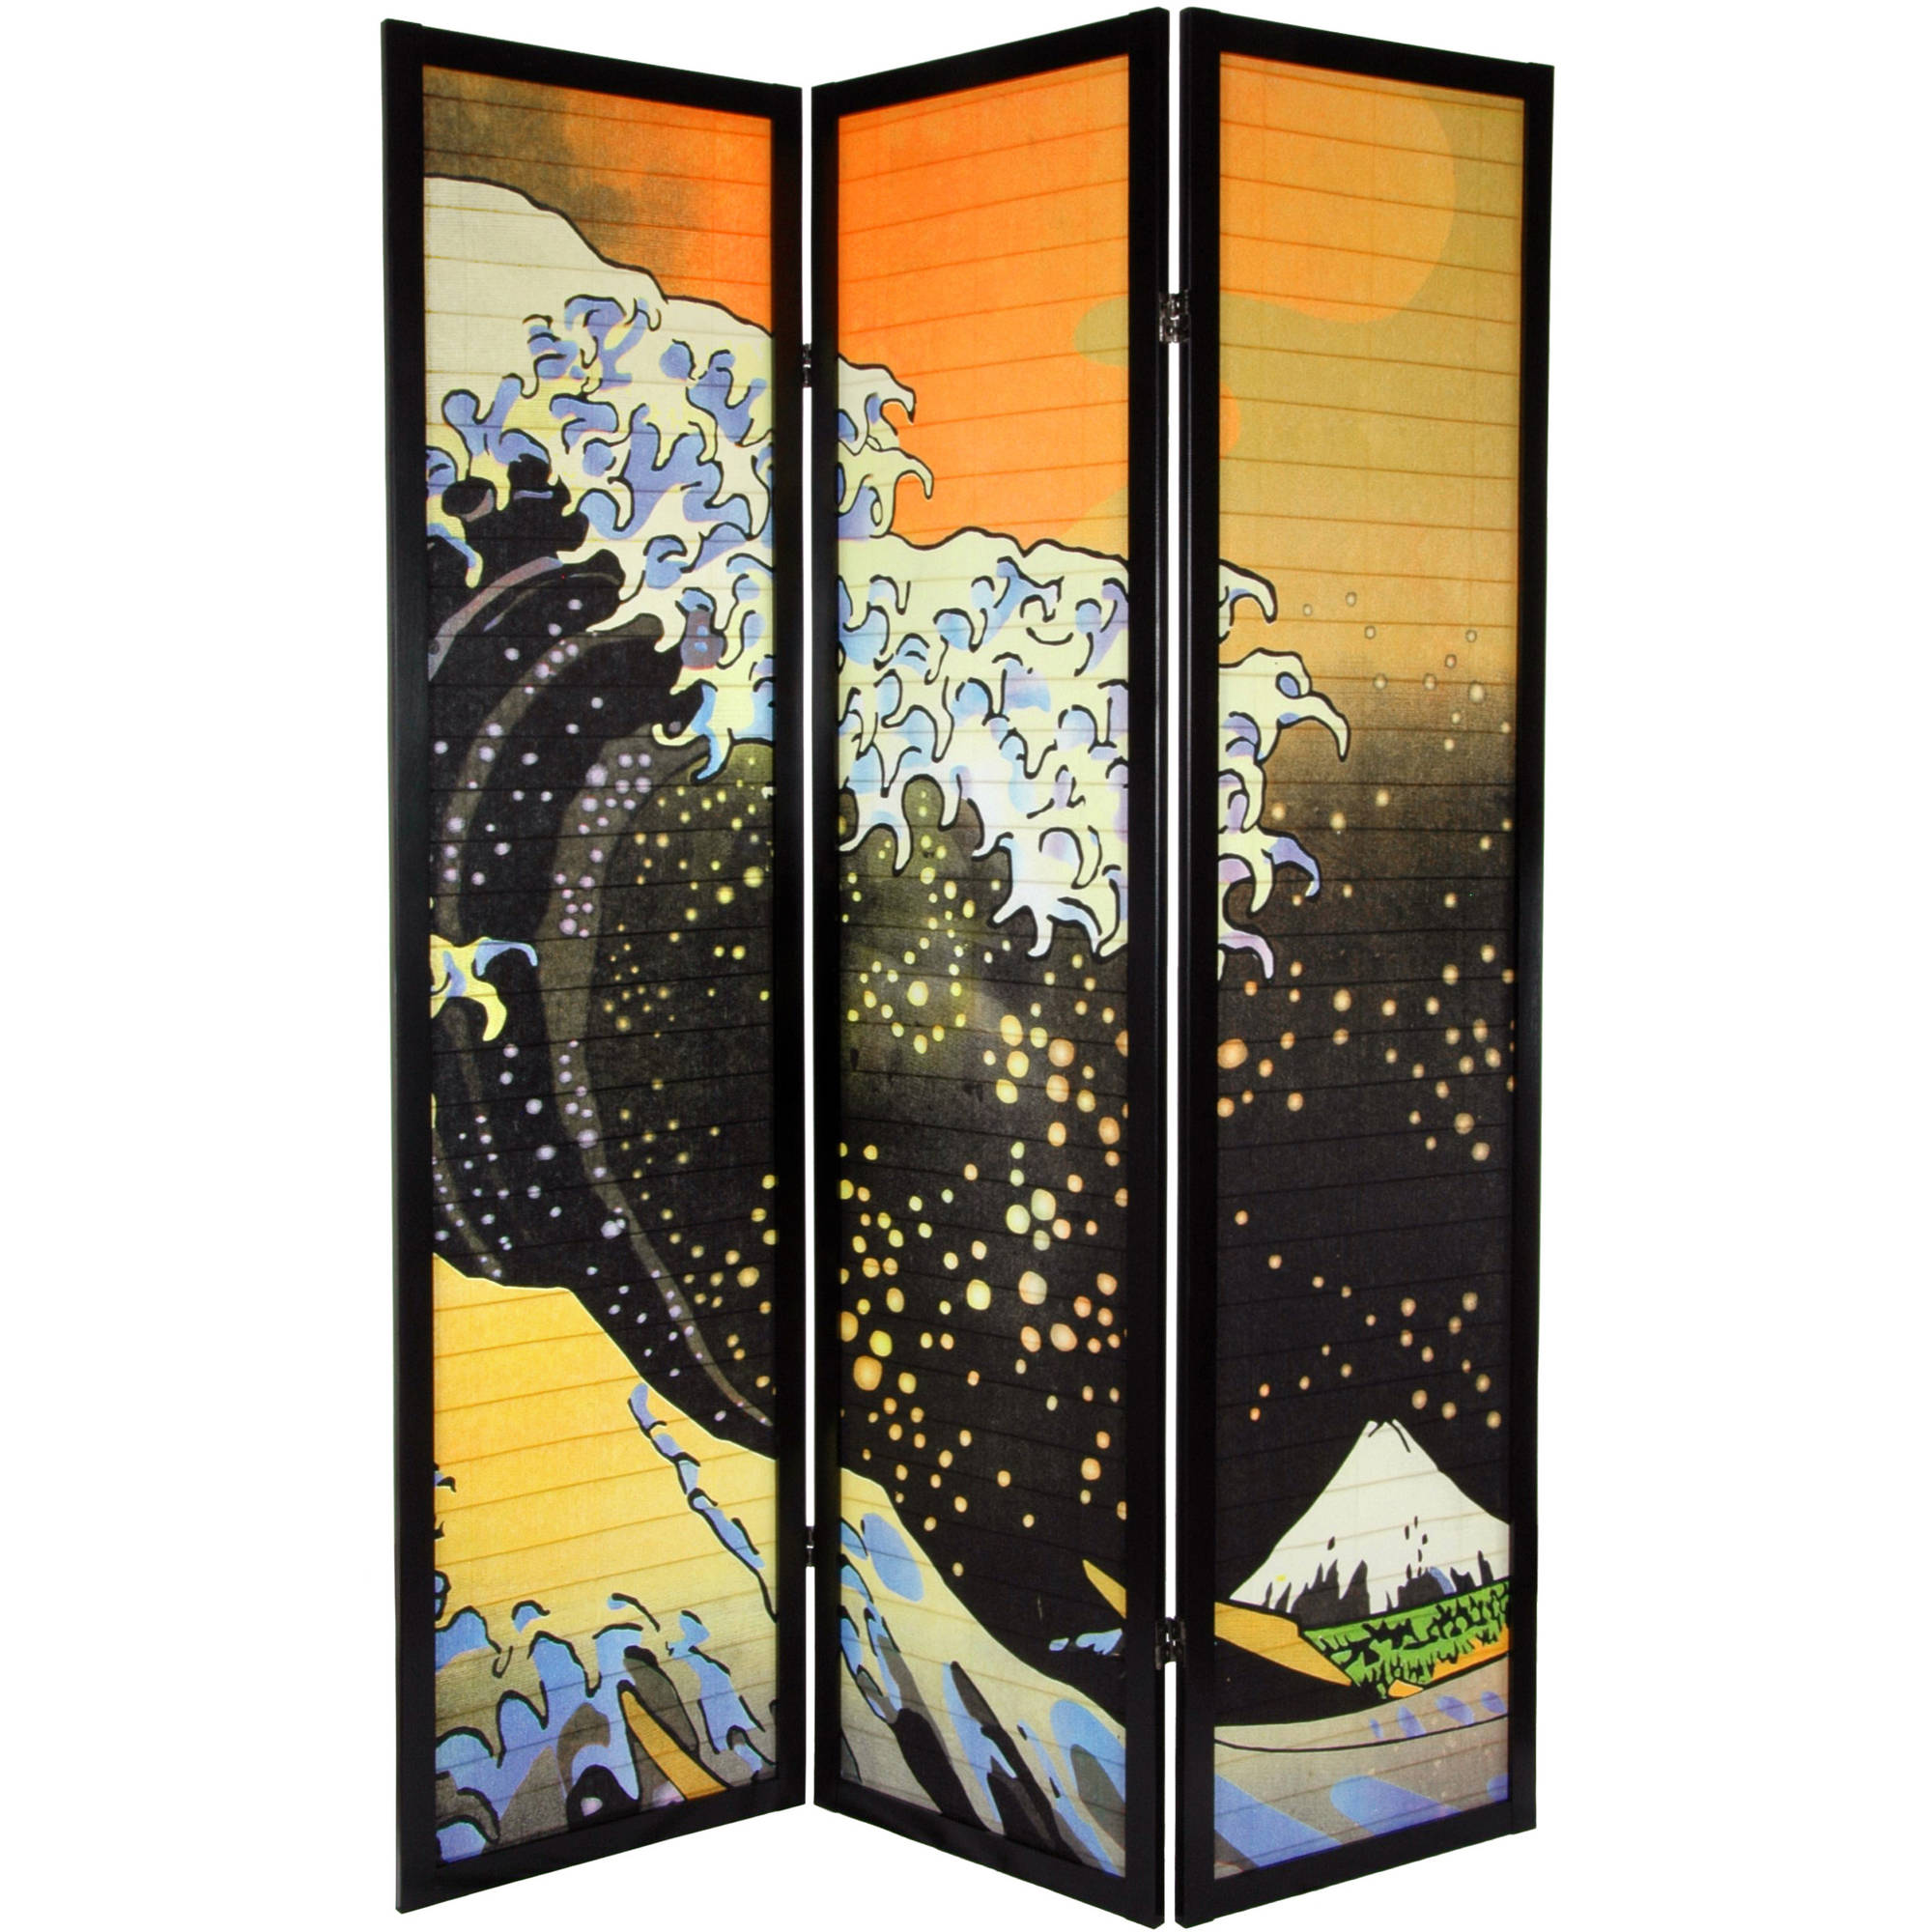 6' Tall Japanese Wave Shoji Screen, 3 Panels